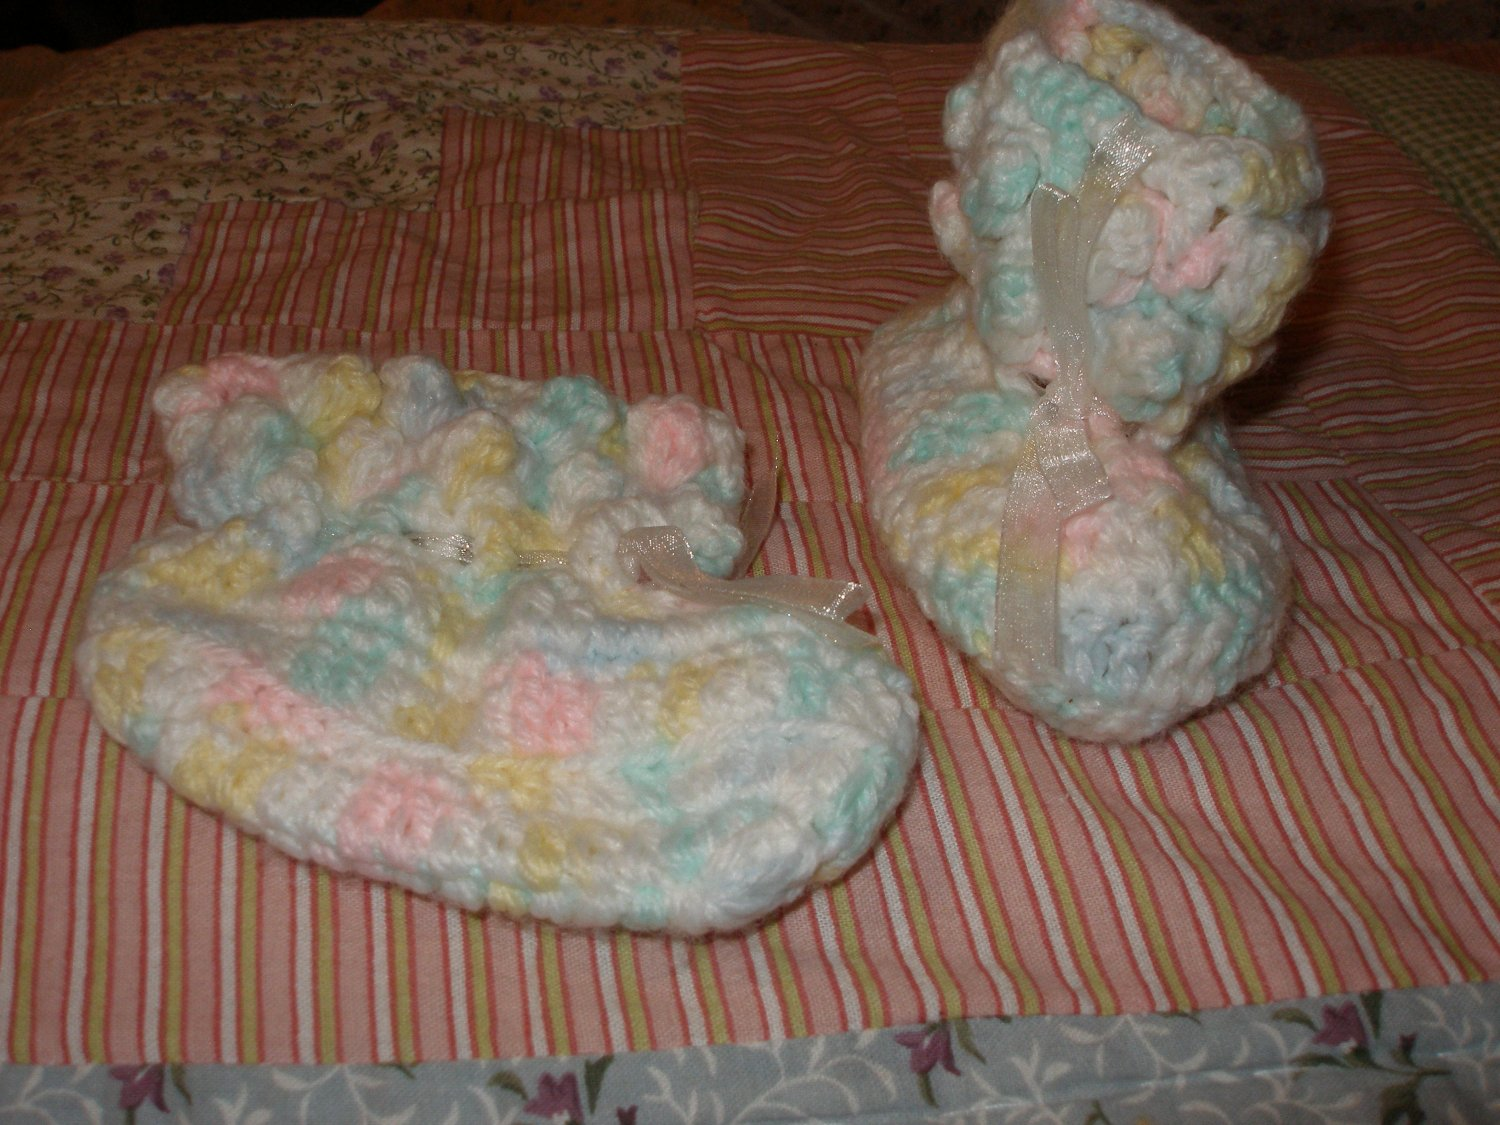 Pastel variagated booties